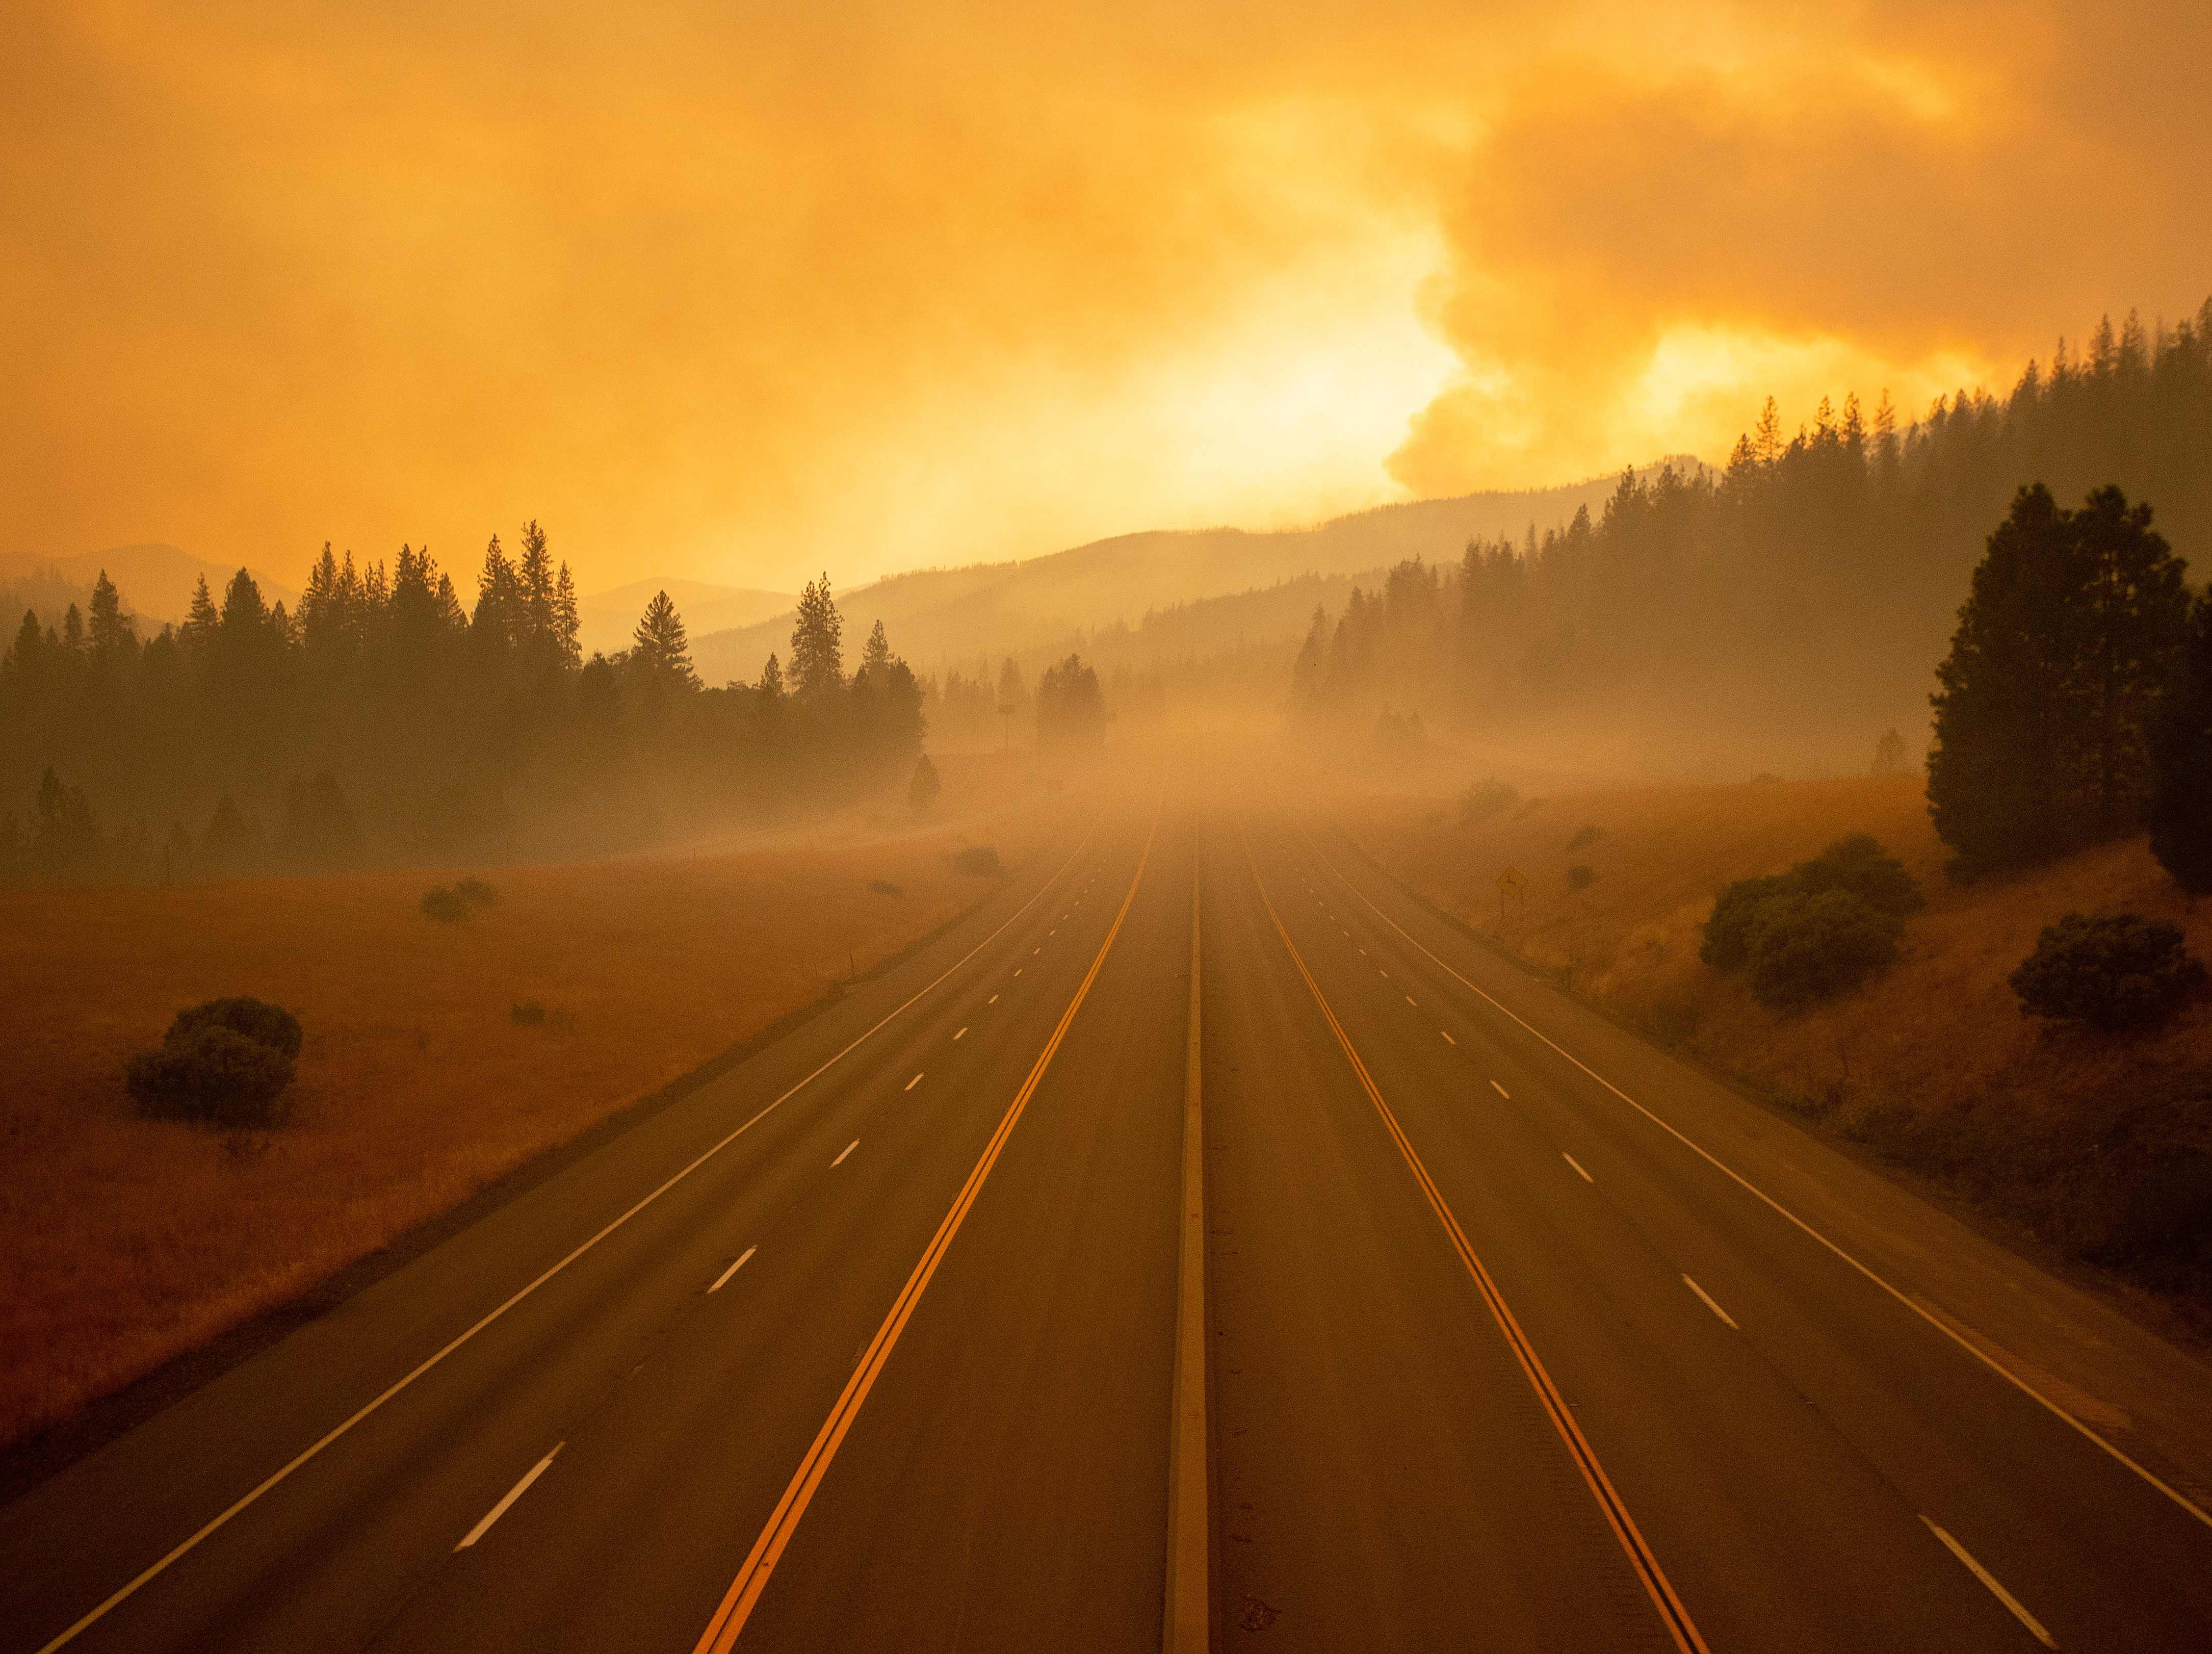 Interstate 5, which has been closed due to the Delta Fire, is seen completely empty in Lamoine, California, in the Shasta Trinity National Forest, on September 6, 2018.